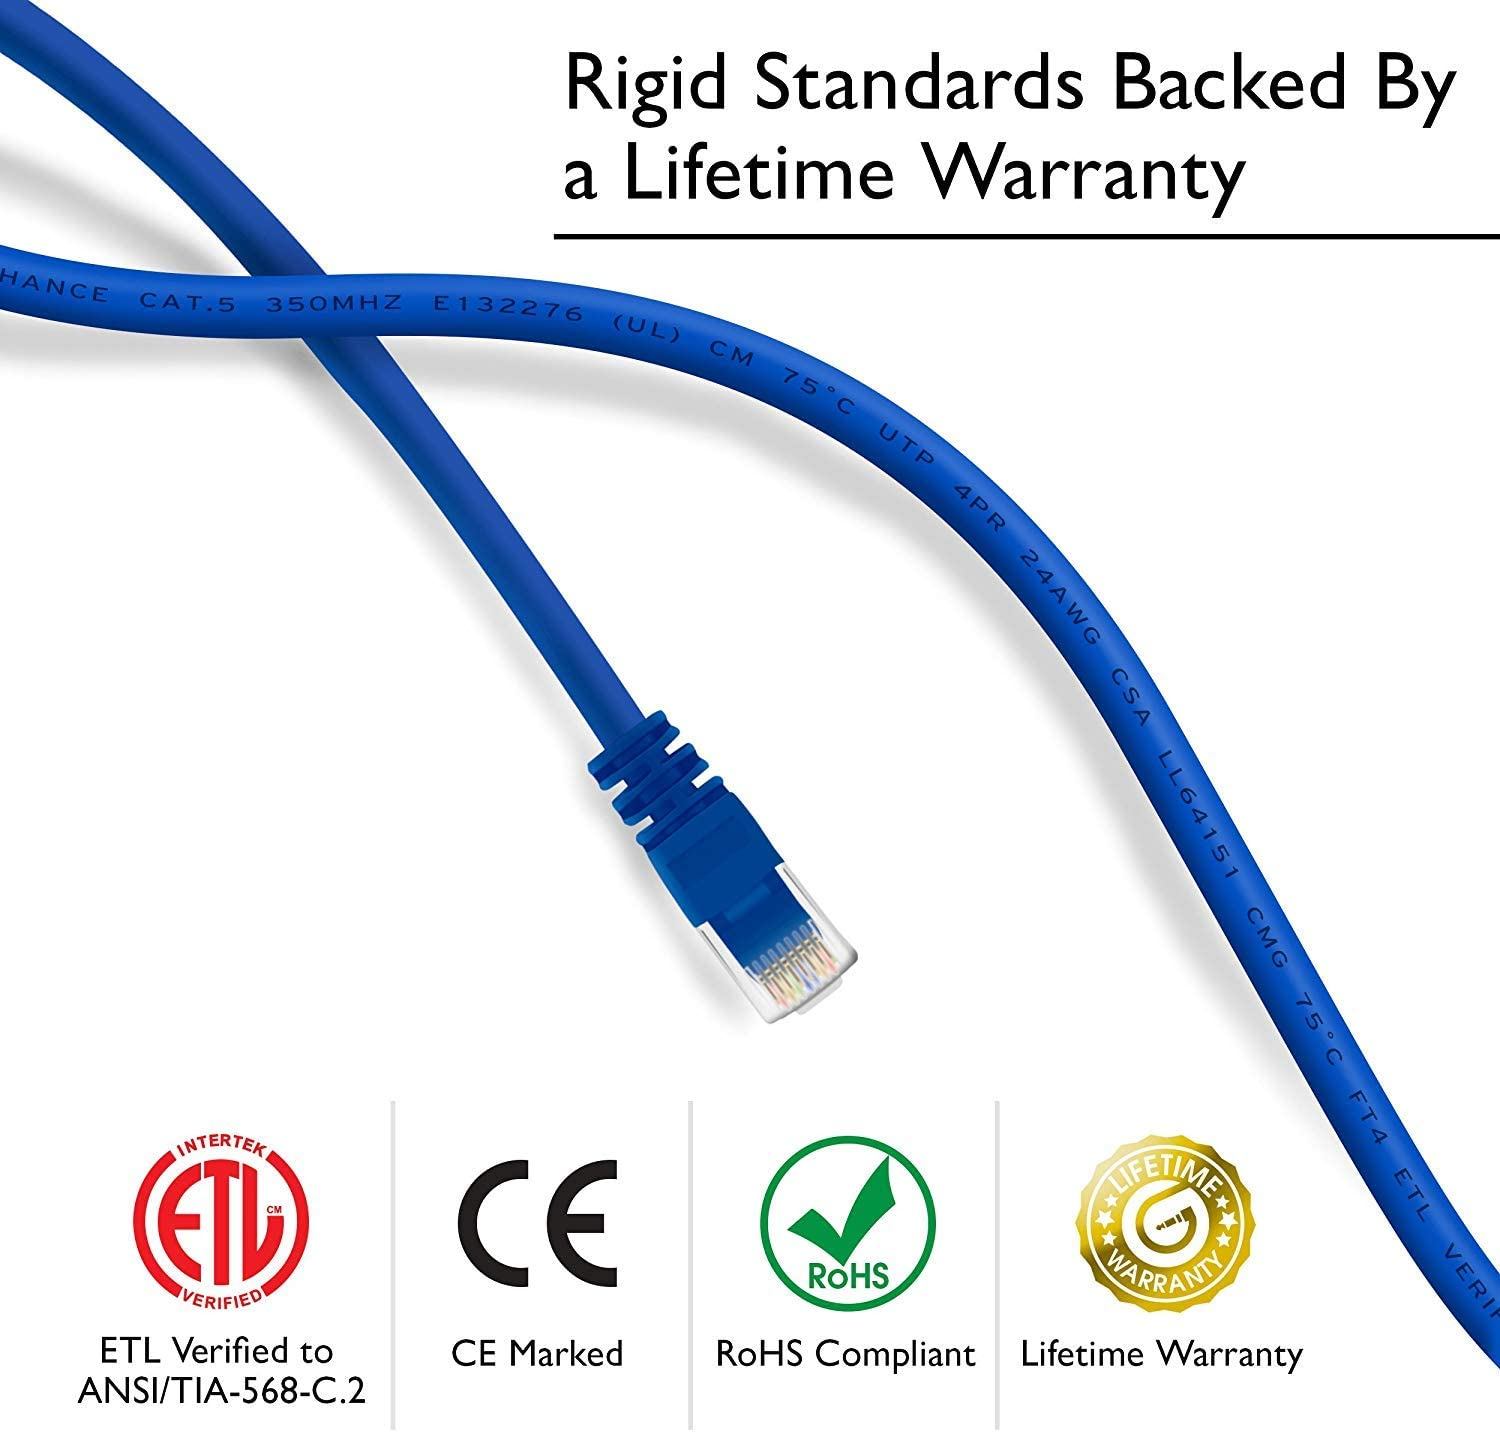 Cat5e Ethernet Patch Cable 1 Foot Compatible with 48 Port Switch POE Rackmount 48port Gigabit Blue GearIT 50-Pack Snagless RJ45 Computer LAN Network Cord